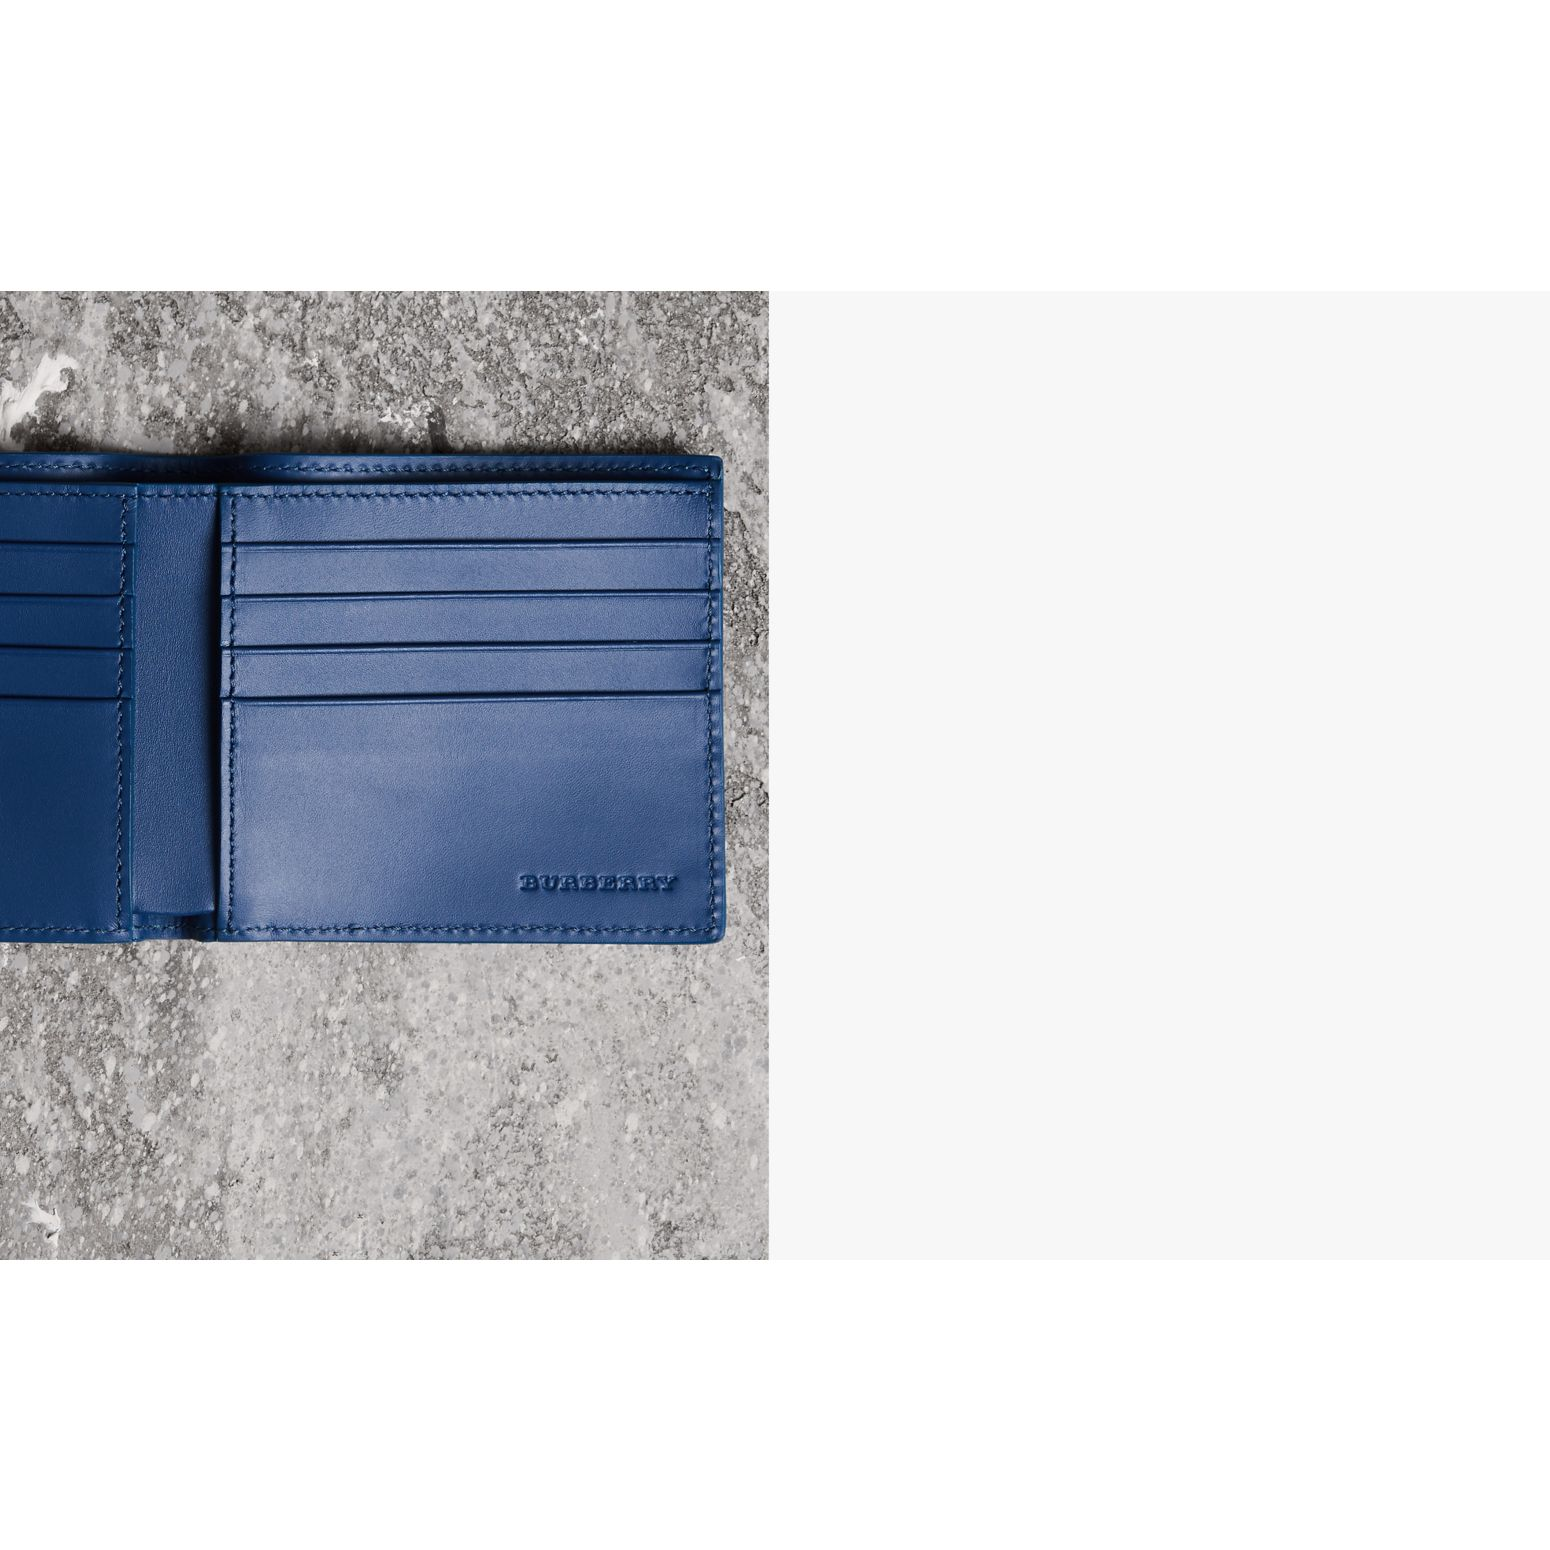 Grainy Leather International Bifold Wallet in Bright Ultramarine - Men | Burberry Hong Kong - gallery image 1